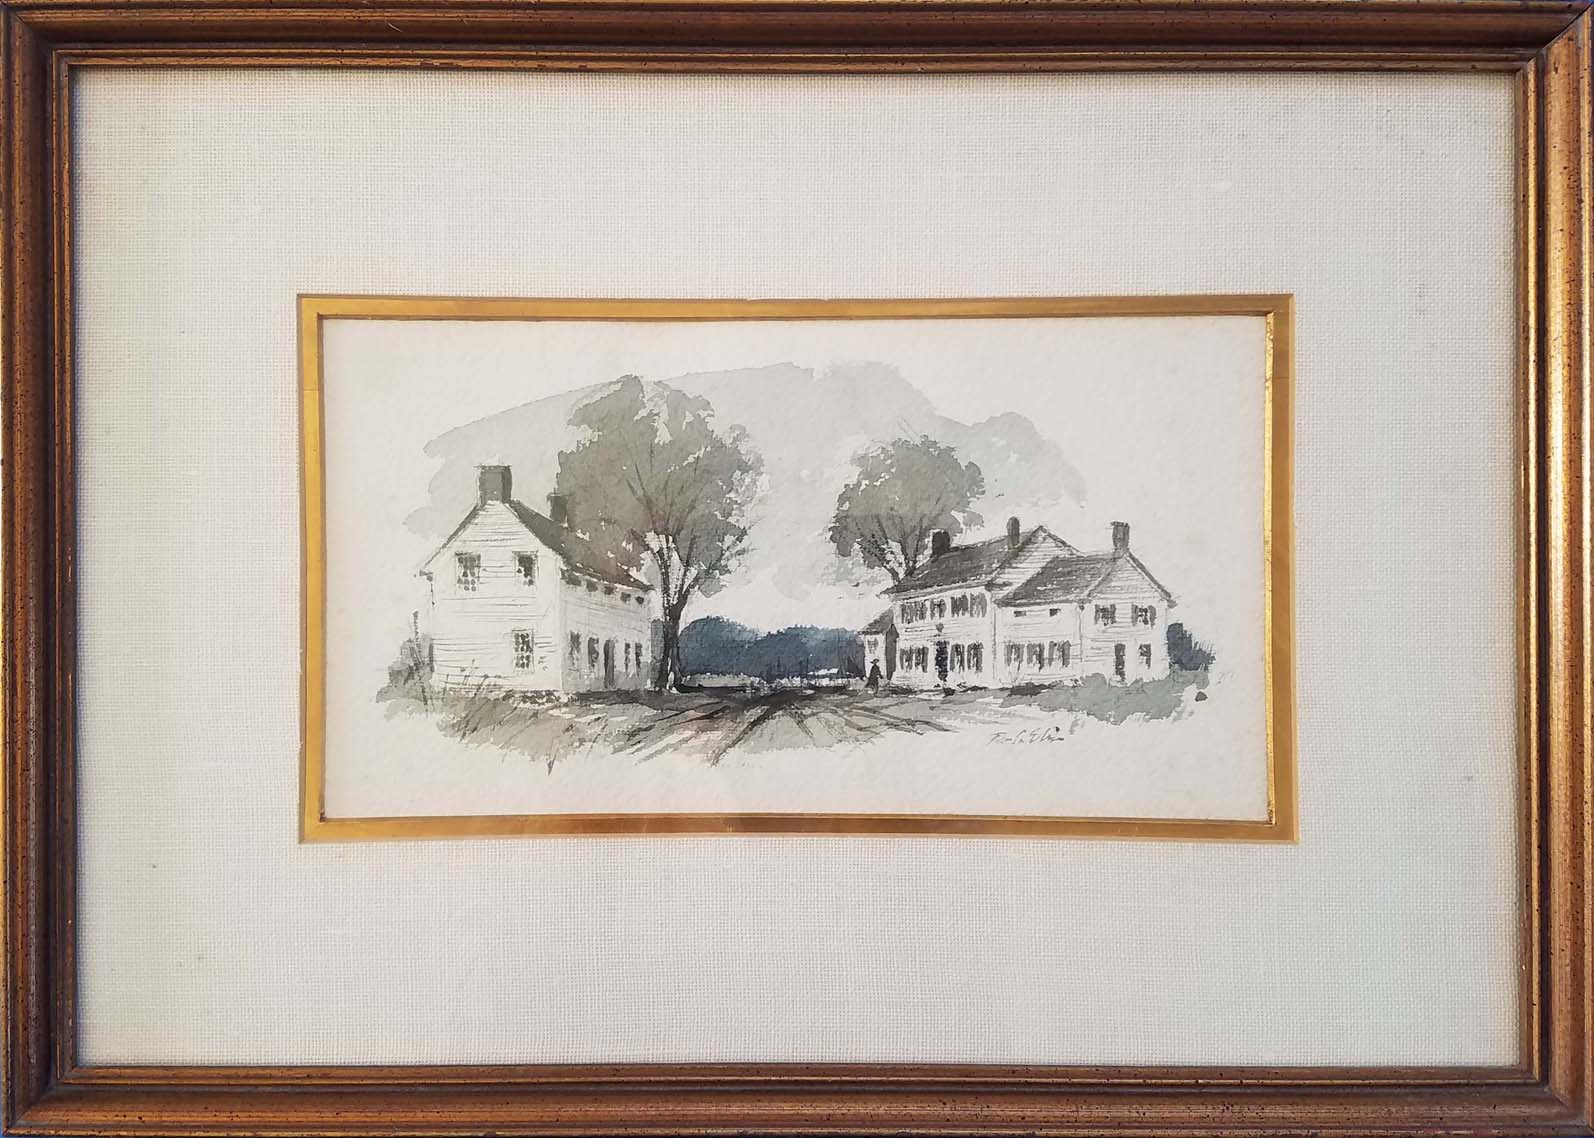 Morrell and Day Houses-framed